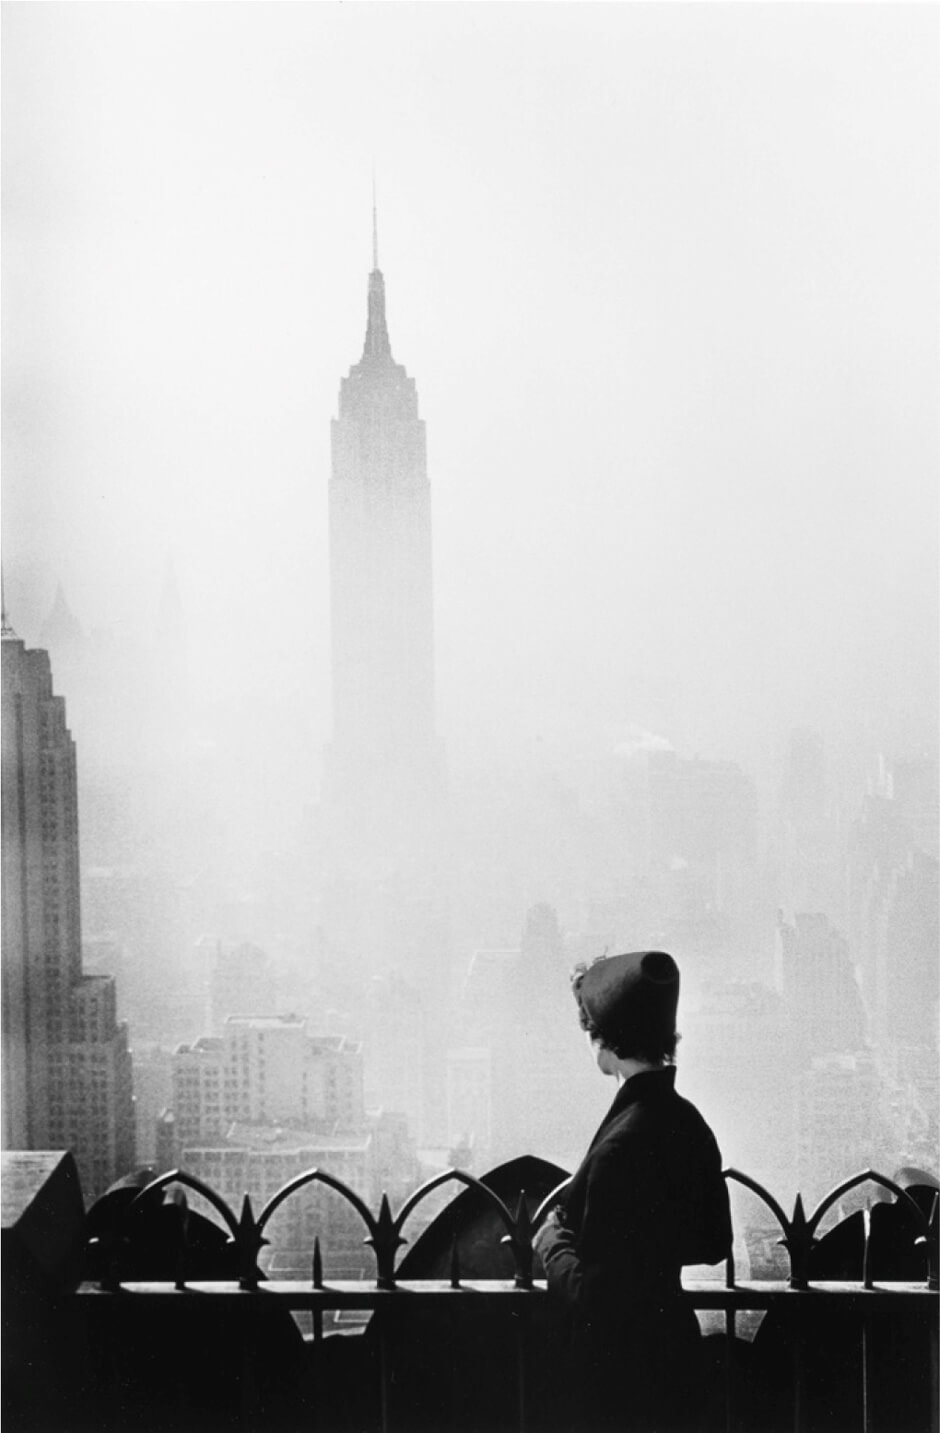 baf02361_elliotterwitt_new-york-city-empire-sta